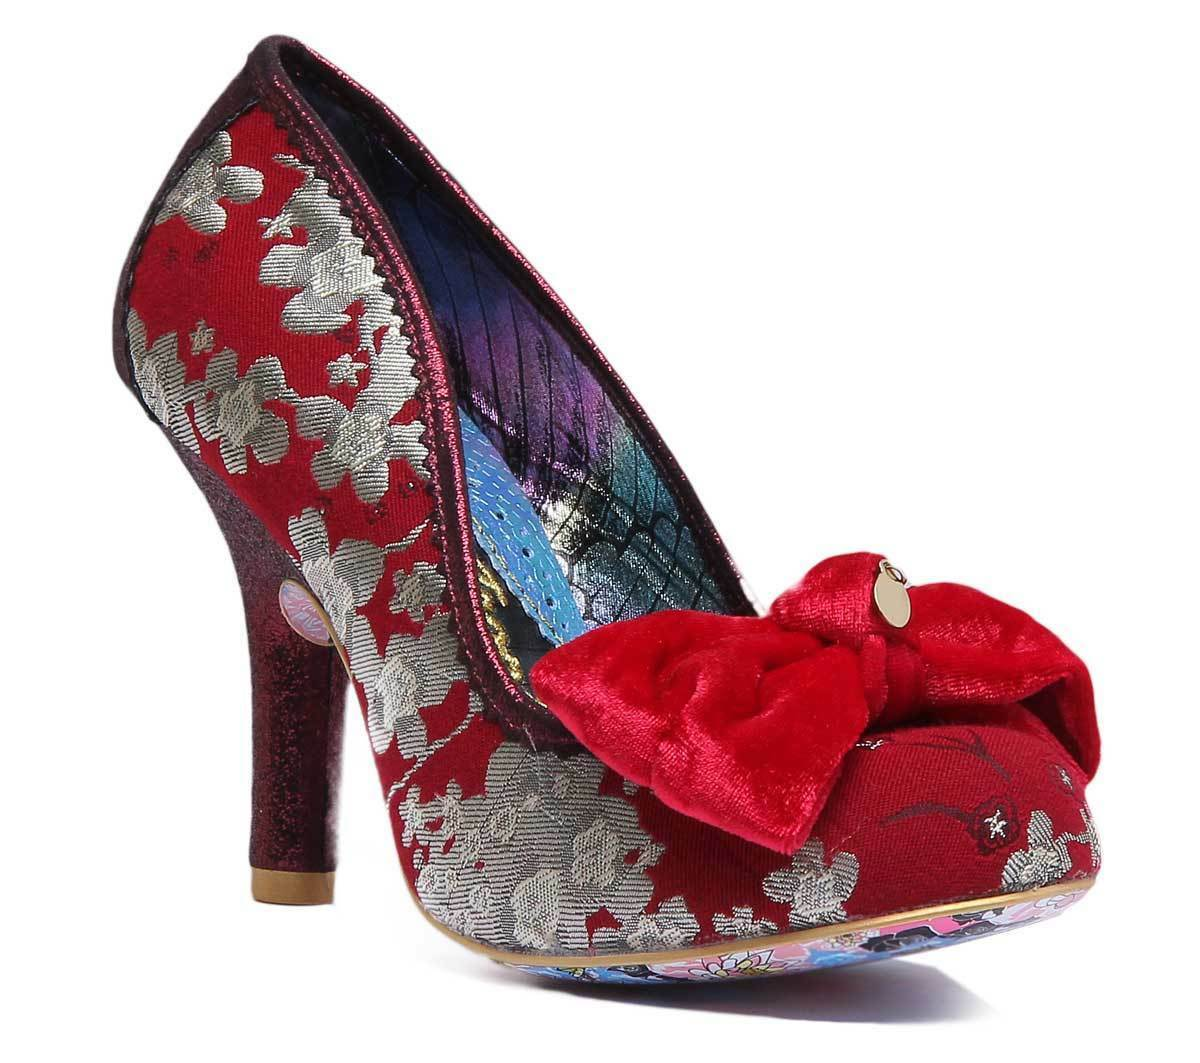 Irregular Choice French Fries Damenschuhe  Synthetic ROT Mid Heel  Damenschuhe UK Größe 3 - 8 80a83b